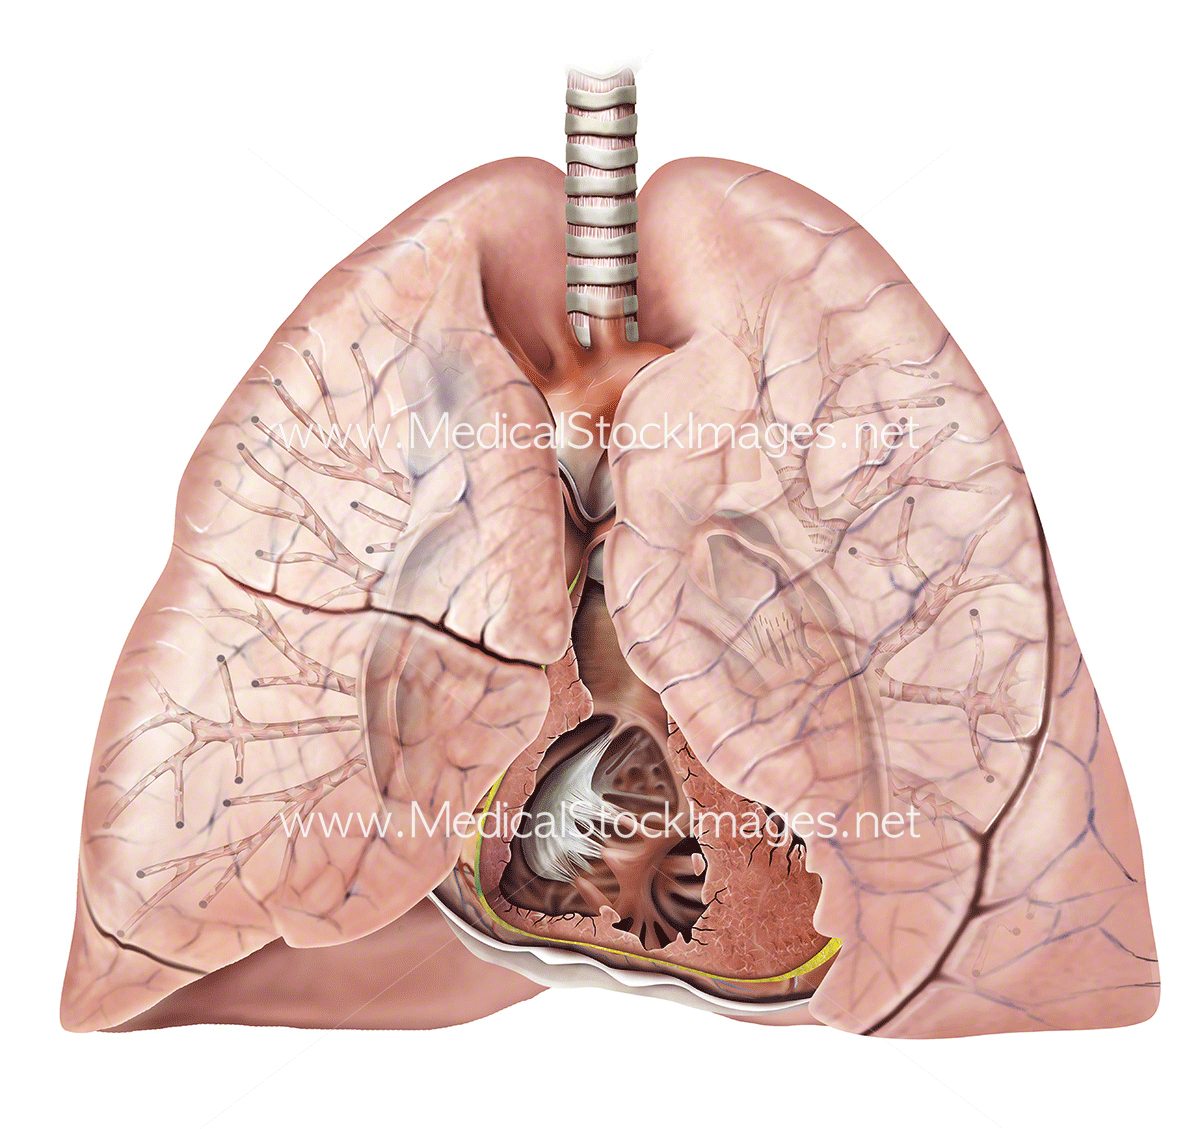 Healthy Heart and Lung Anatomy – Medical Stock Images Company